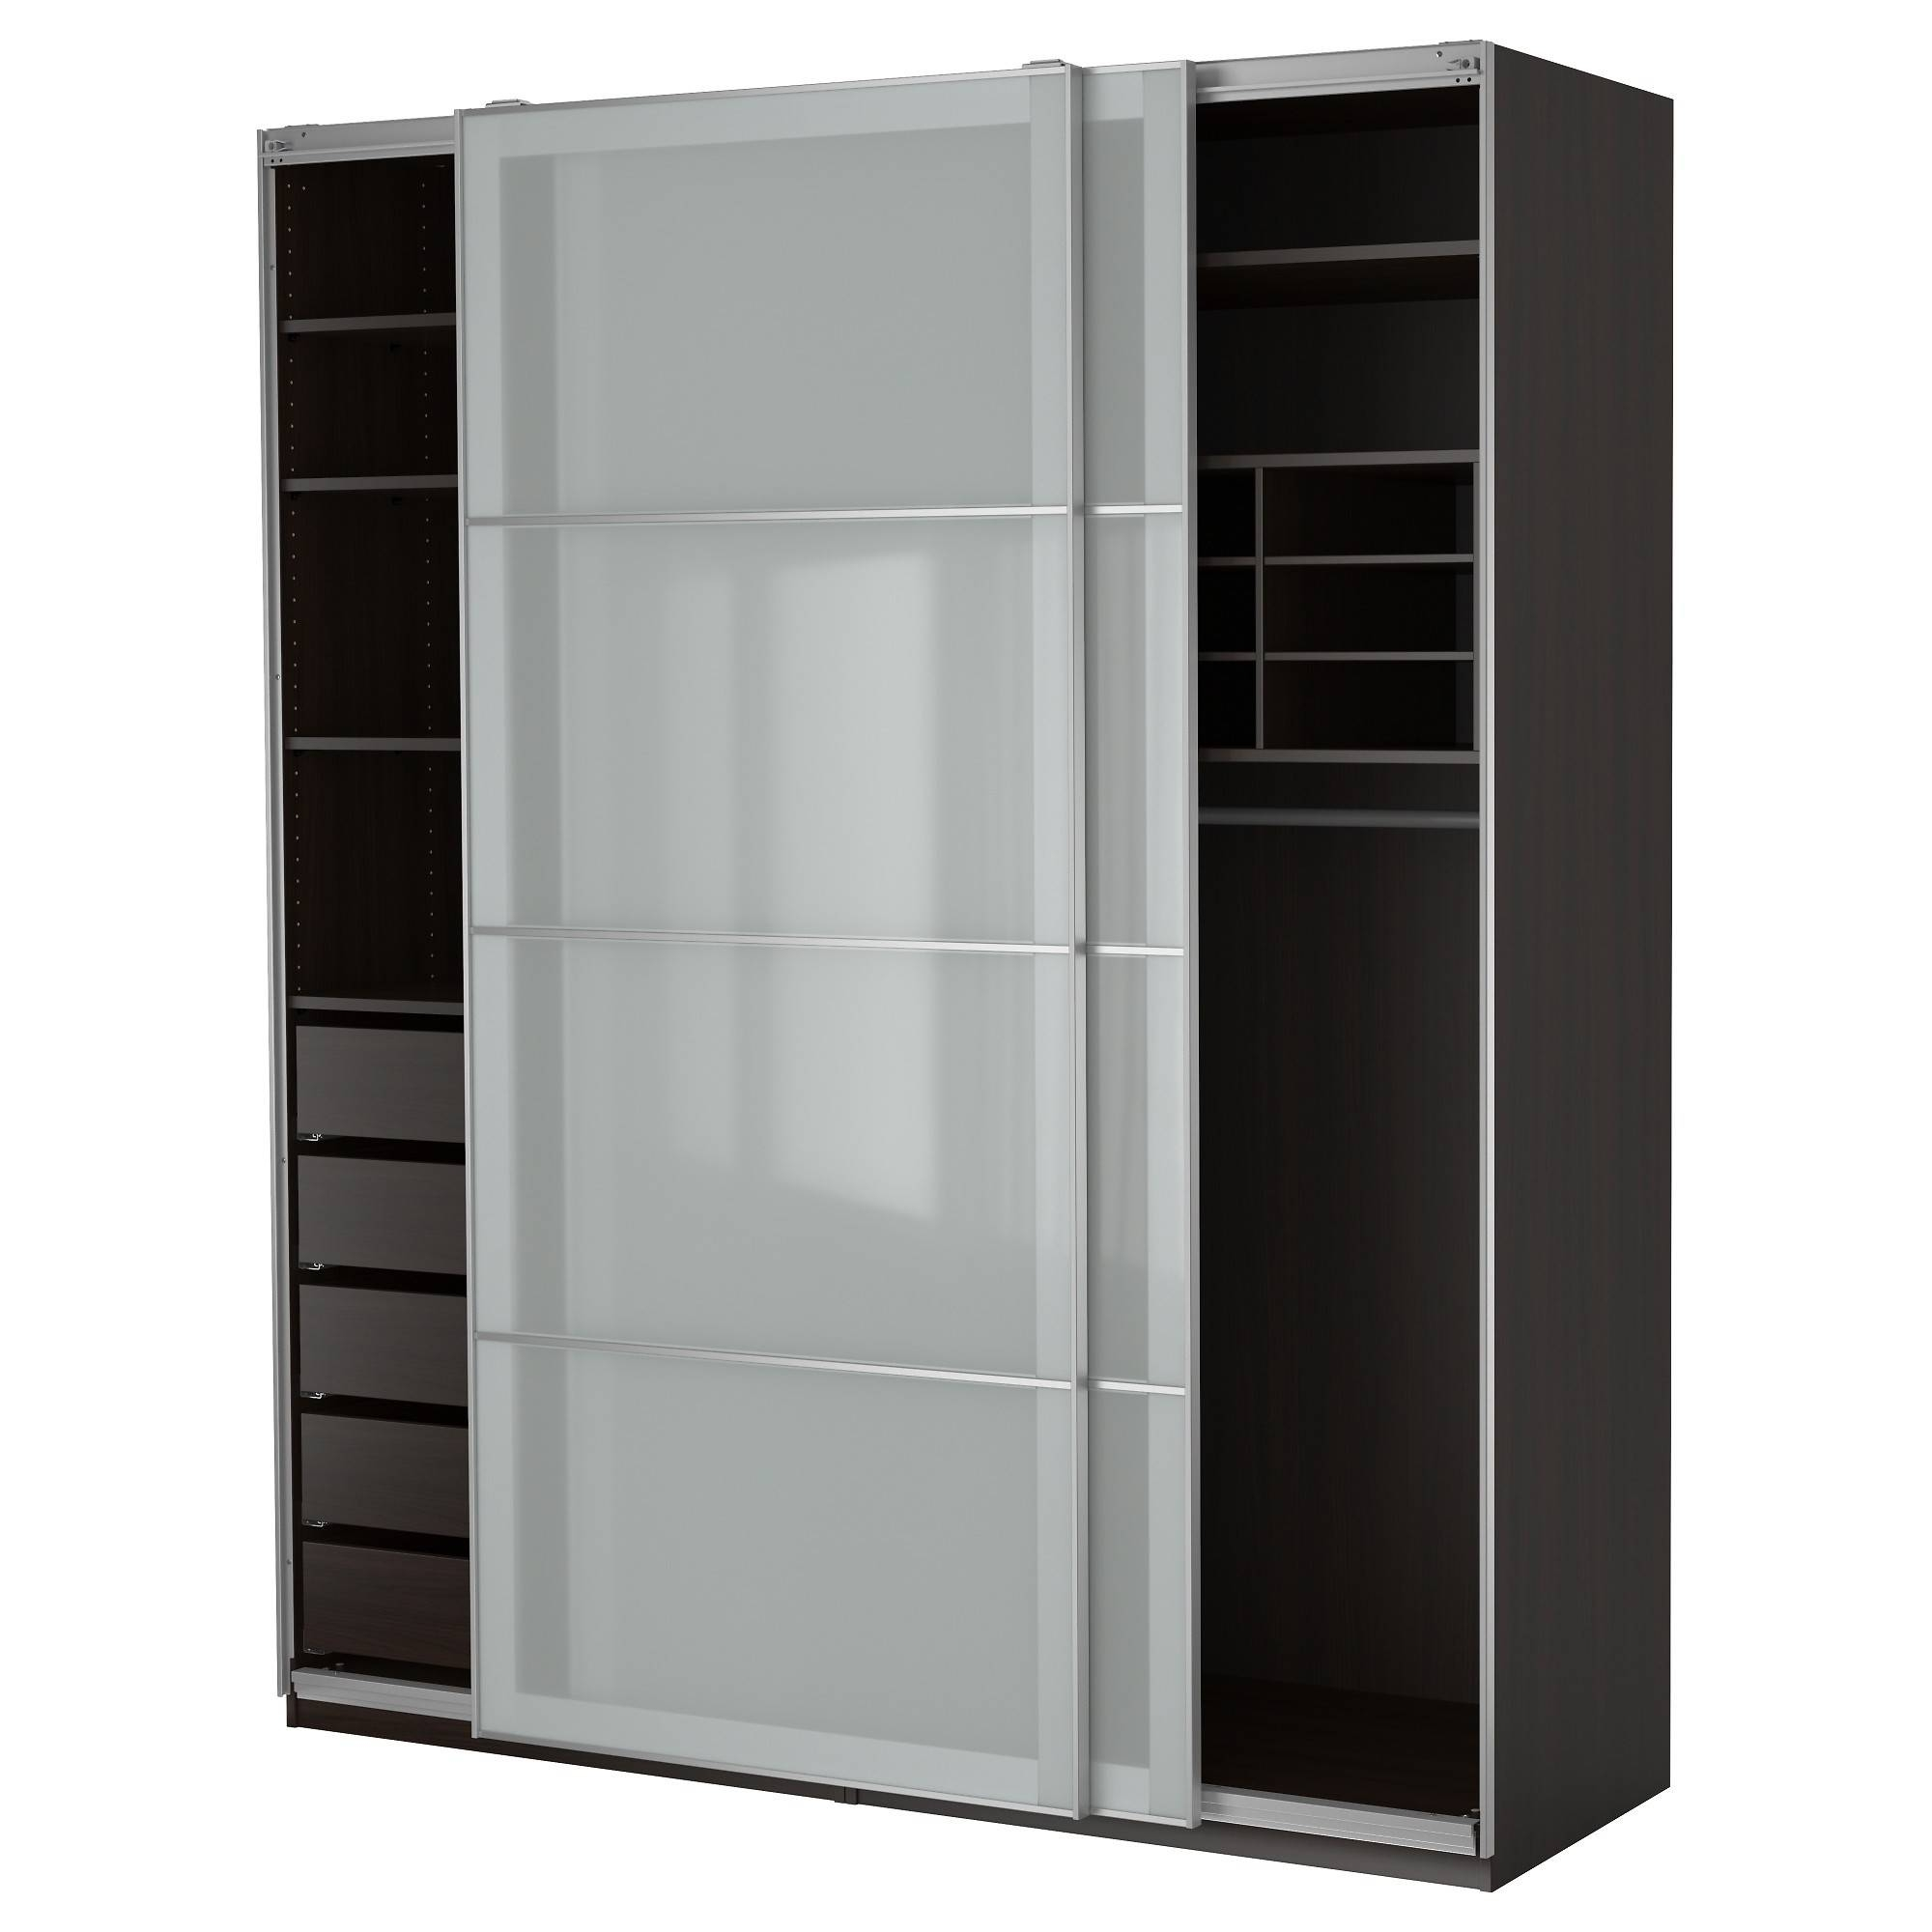 Black Stained Solid Wood Wardrobe Having Open Shelf And Drawers regarding Wardrobe With Shelves and Drawers (Image 8 of 30)